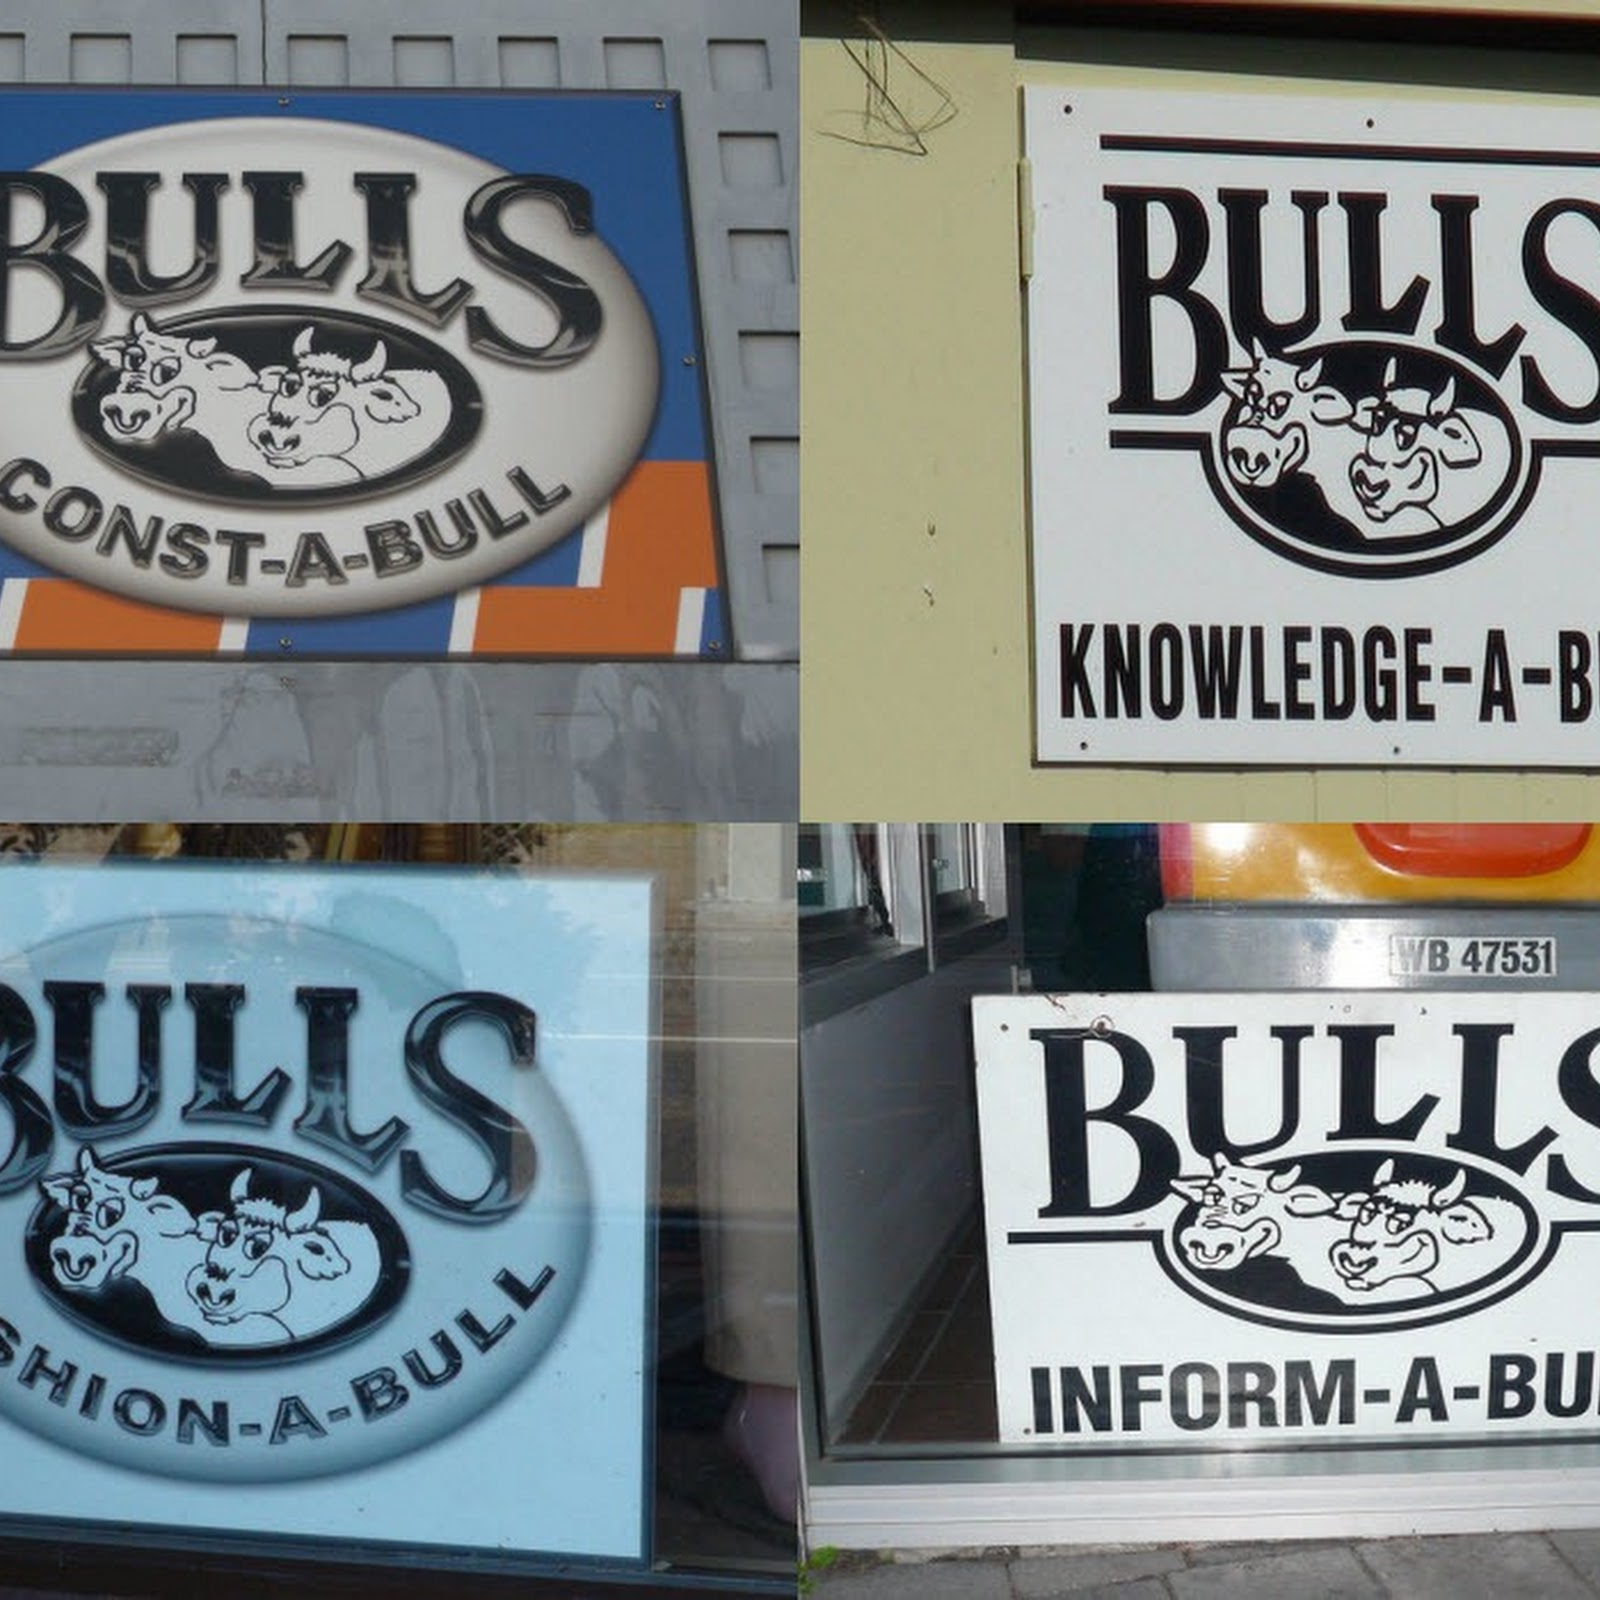 The Town of Bull Puns